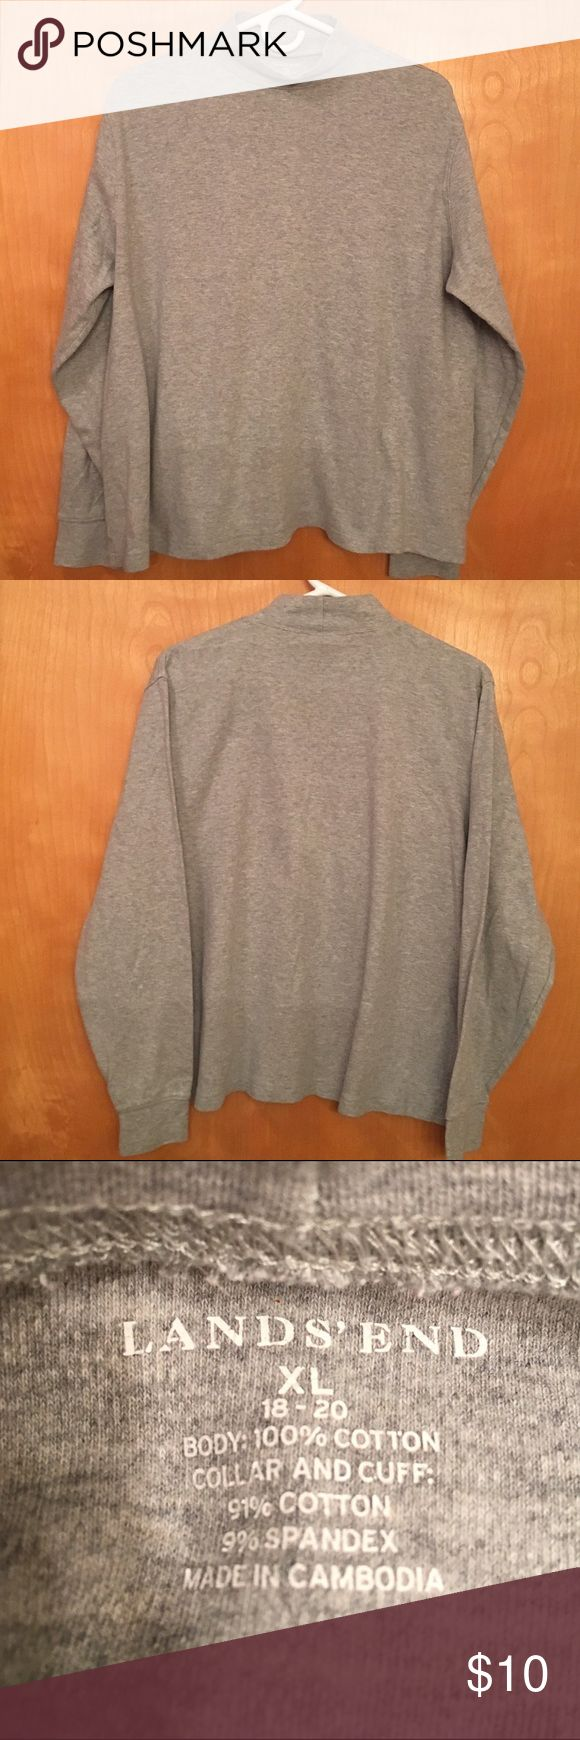 "LANDS END LIGHT GRAY MOCK TURTLENECK 🌺....JUST IN TIME FOR WINTER....VERY NICE CONDITION....LANDS END LIGHT GRAY MOCK TURTLENECK WITH LONG SLEEVES.  The body is 100% cotton and the collar and cuff are 91 % cotton - 9 % spandex.  XL (18-20).  Measurements:  chest 26"", length 24"" and sleeve length 19"".  Details:  machine wash warm normal.  Tumble dry low.  VERY NICE CONDITION!!  COZY and WARM.  Stored in a smoke free home! Lands End Tops"